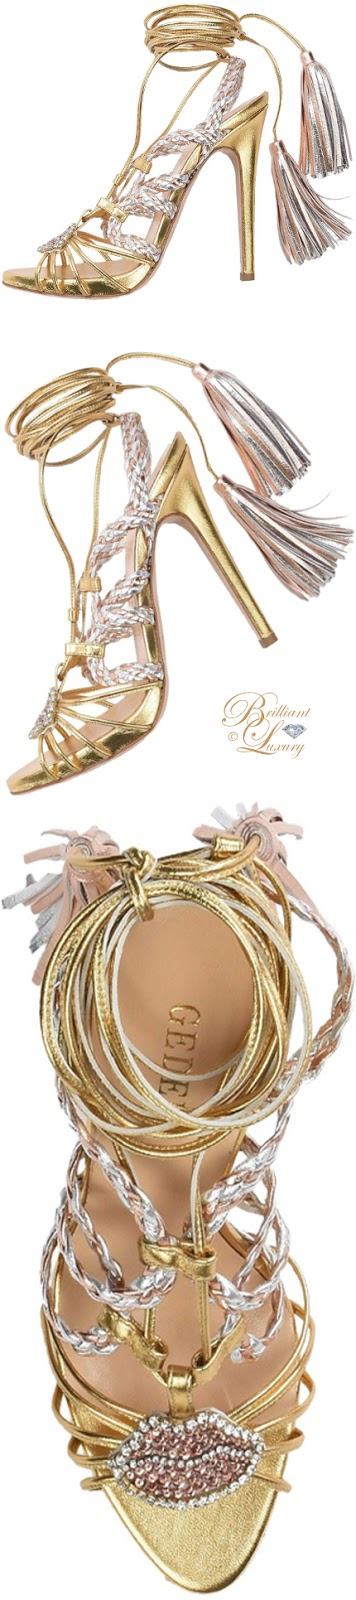 Brilliant Luxury ♦  Gedebe sandals